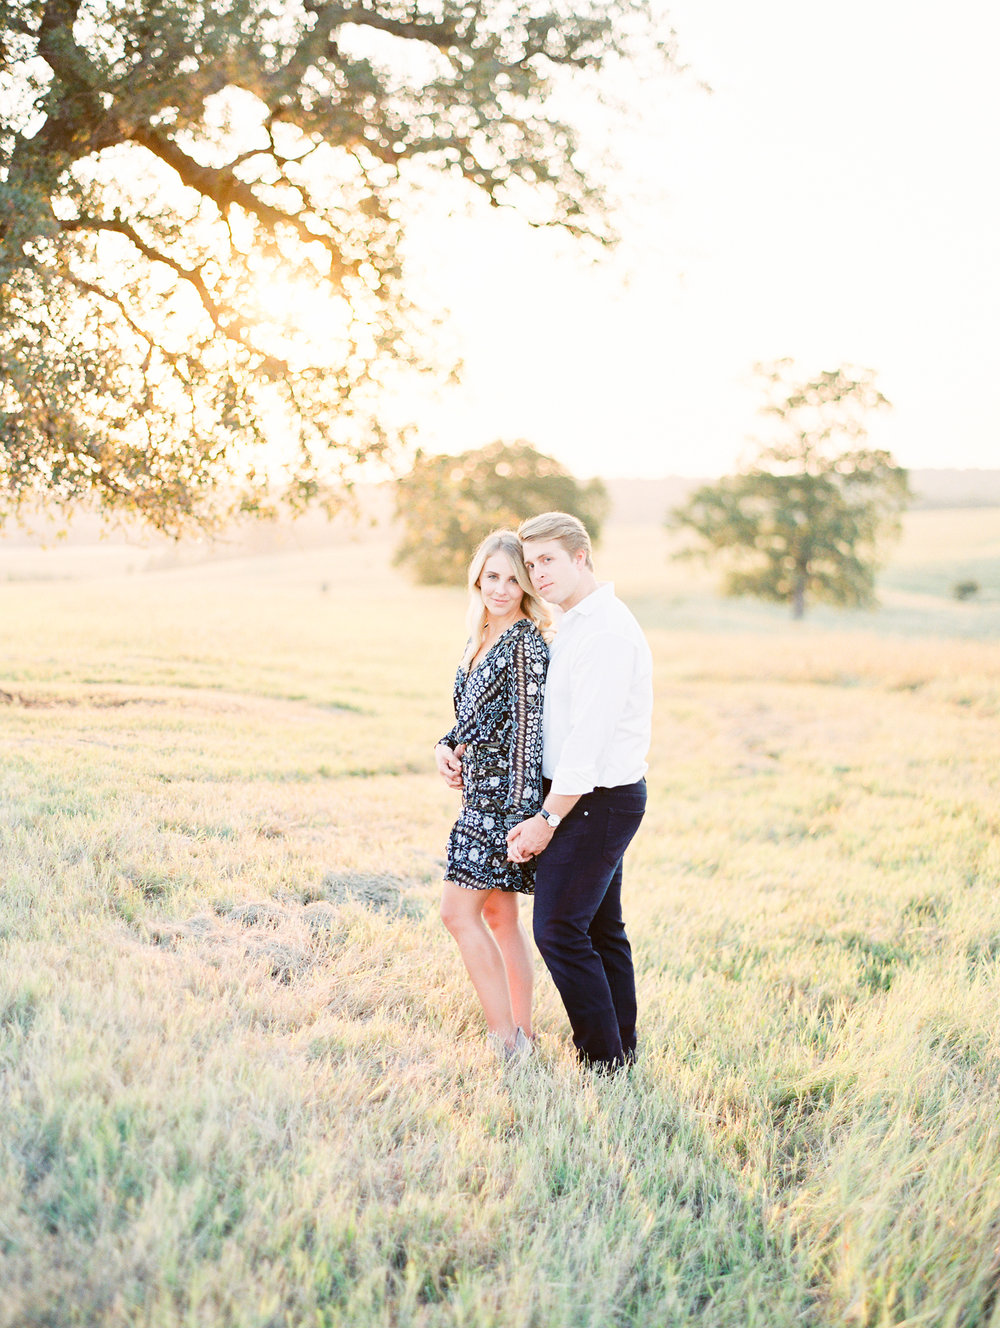 Lauren+John+Engaged+TX-29.jpg